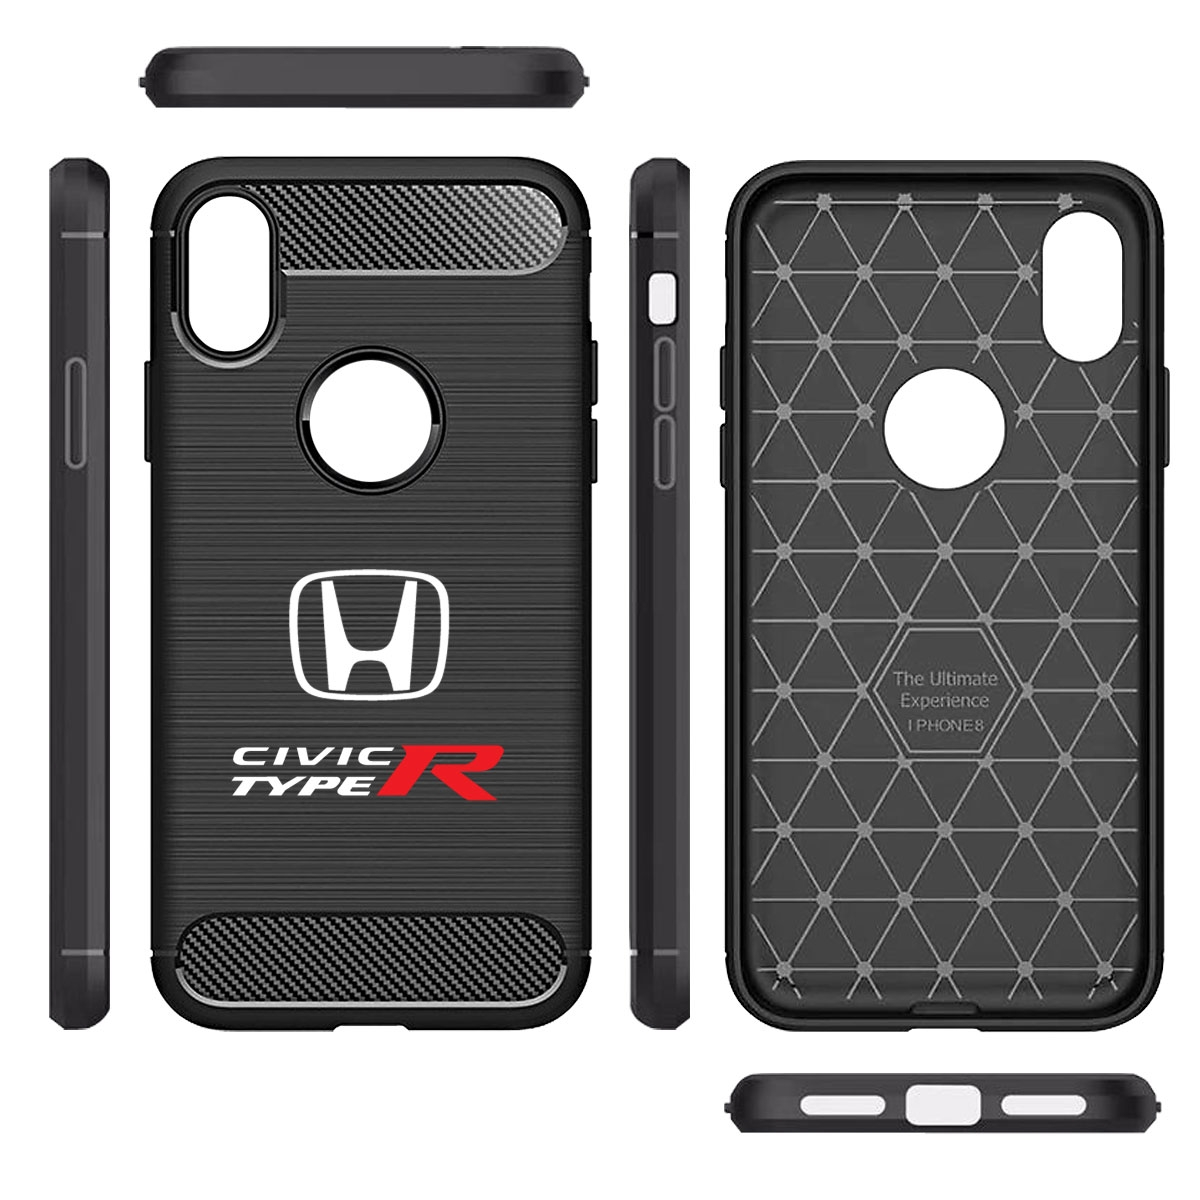 Honda Civic Type-R Shockproof Black Carbon Fiber Textures Stripes Cell Phone Case